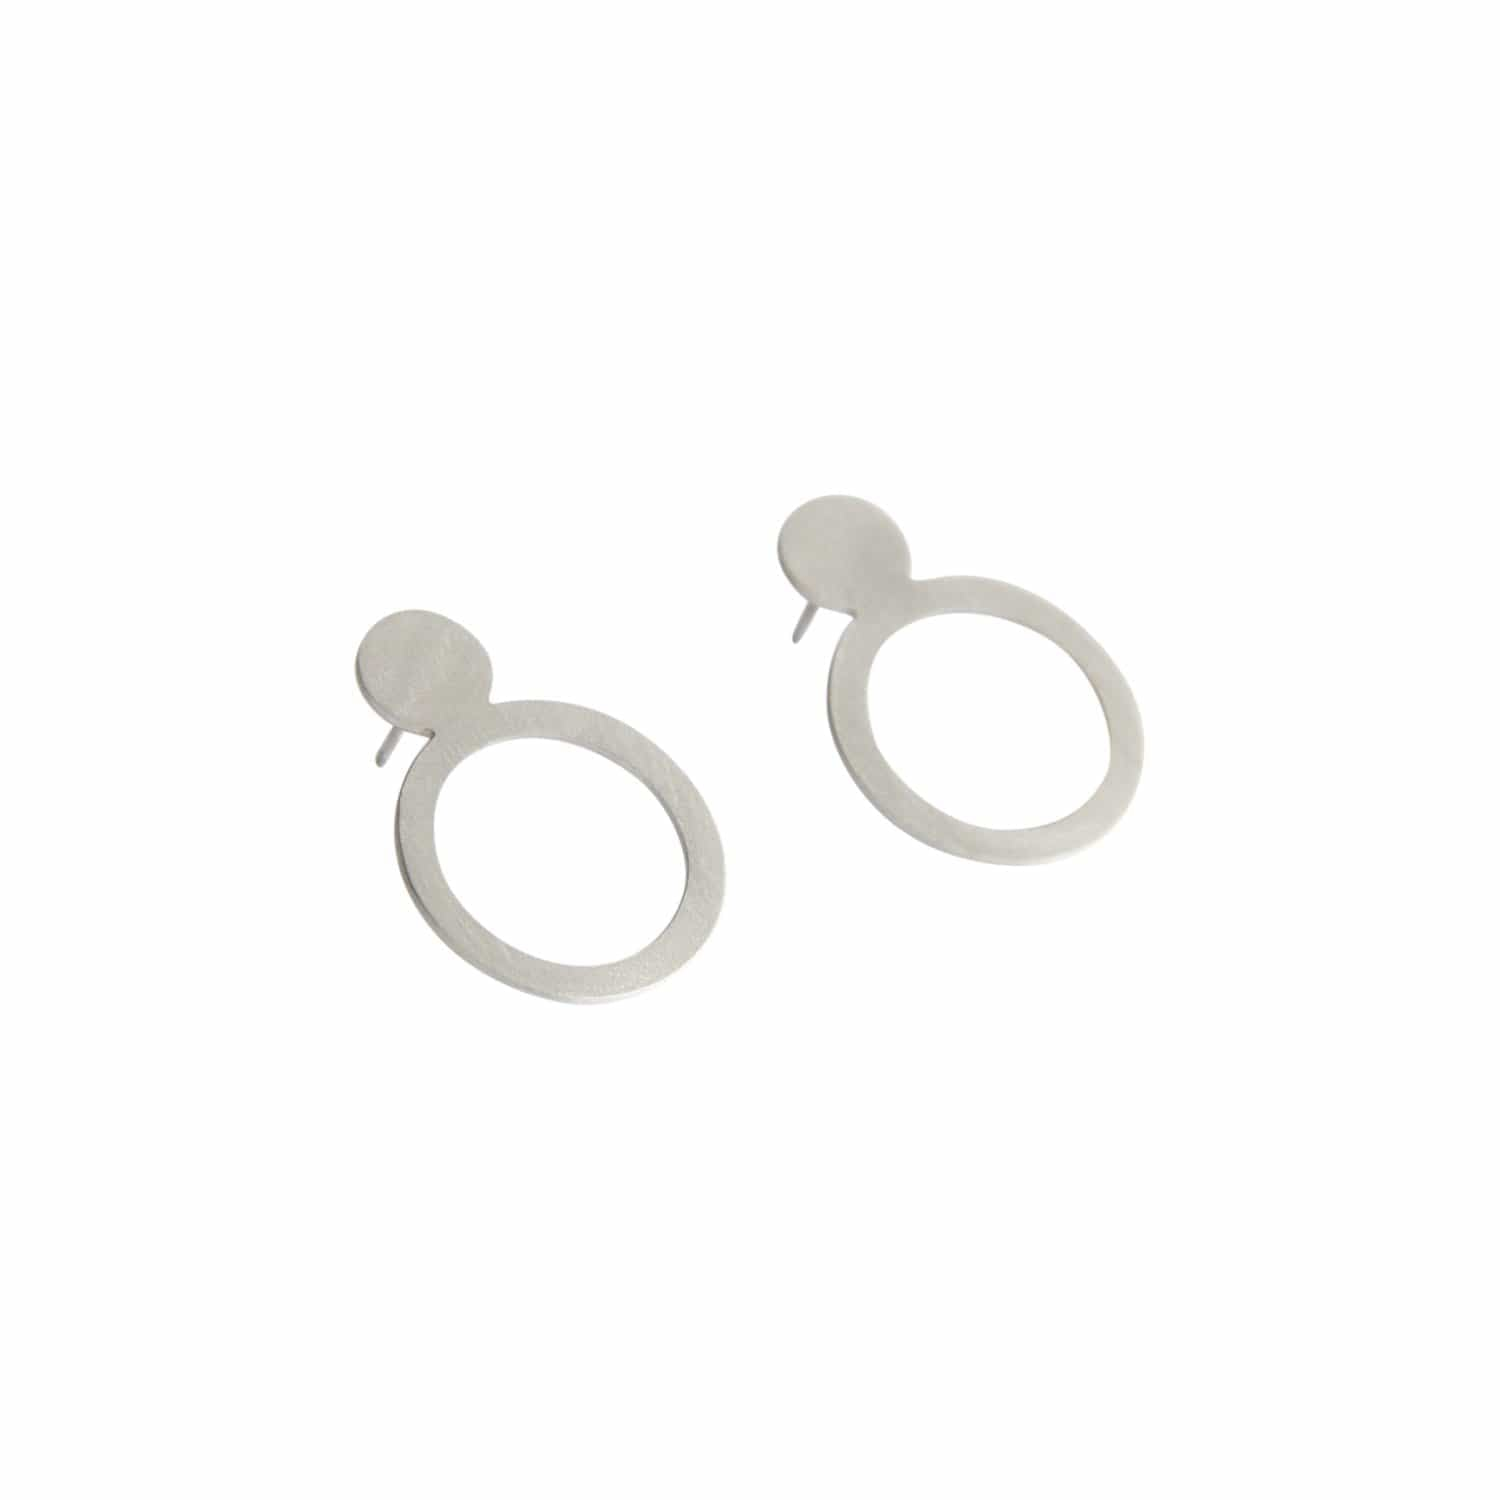 tothemetal Earrings Double Circle Silver Post Earrings